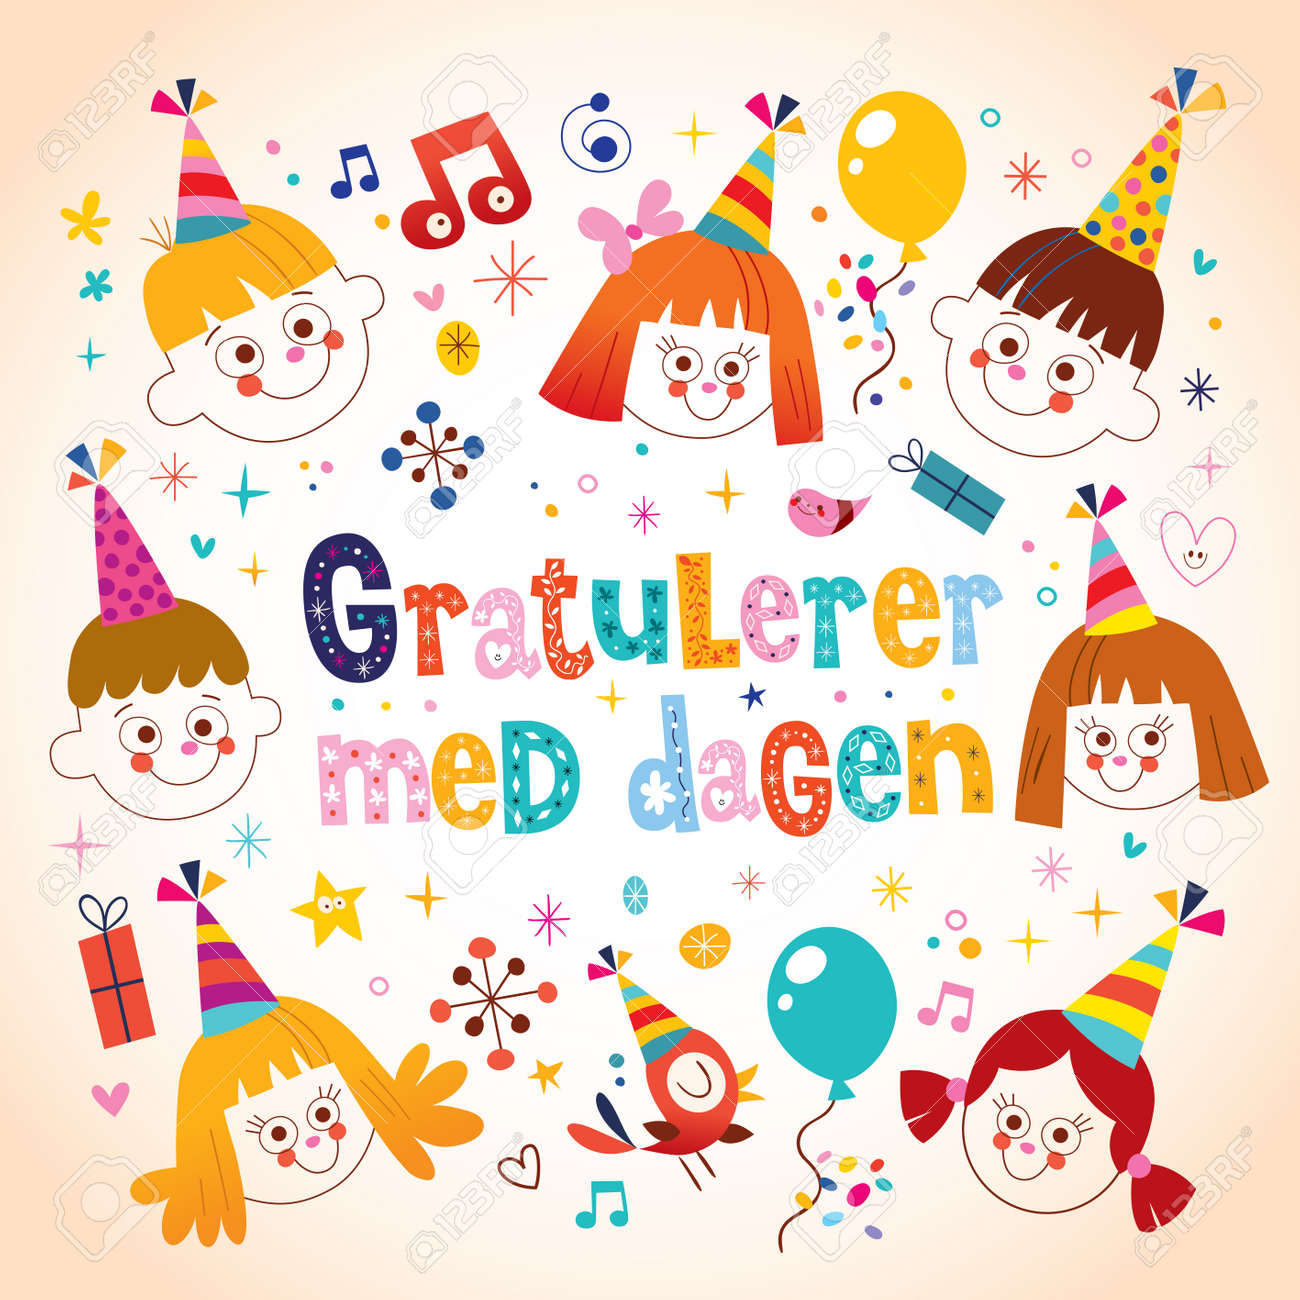 Gratulerer med dagen happy birthday in norwegian kids greeting gratulerer med dagen happy birthday in norwegian kids greeting card stock vector 59014790 m4hsunfo